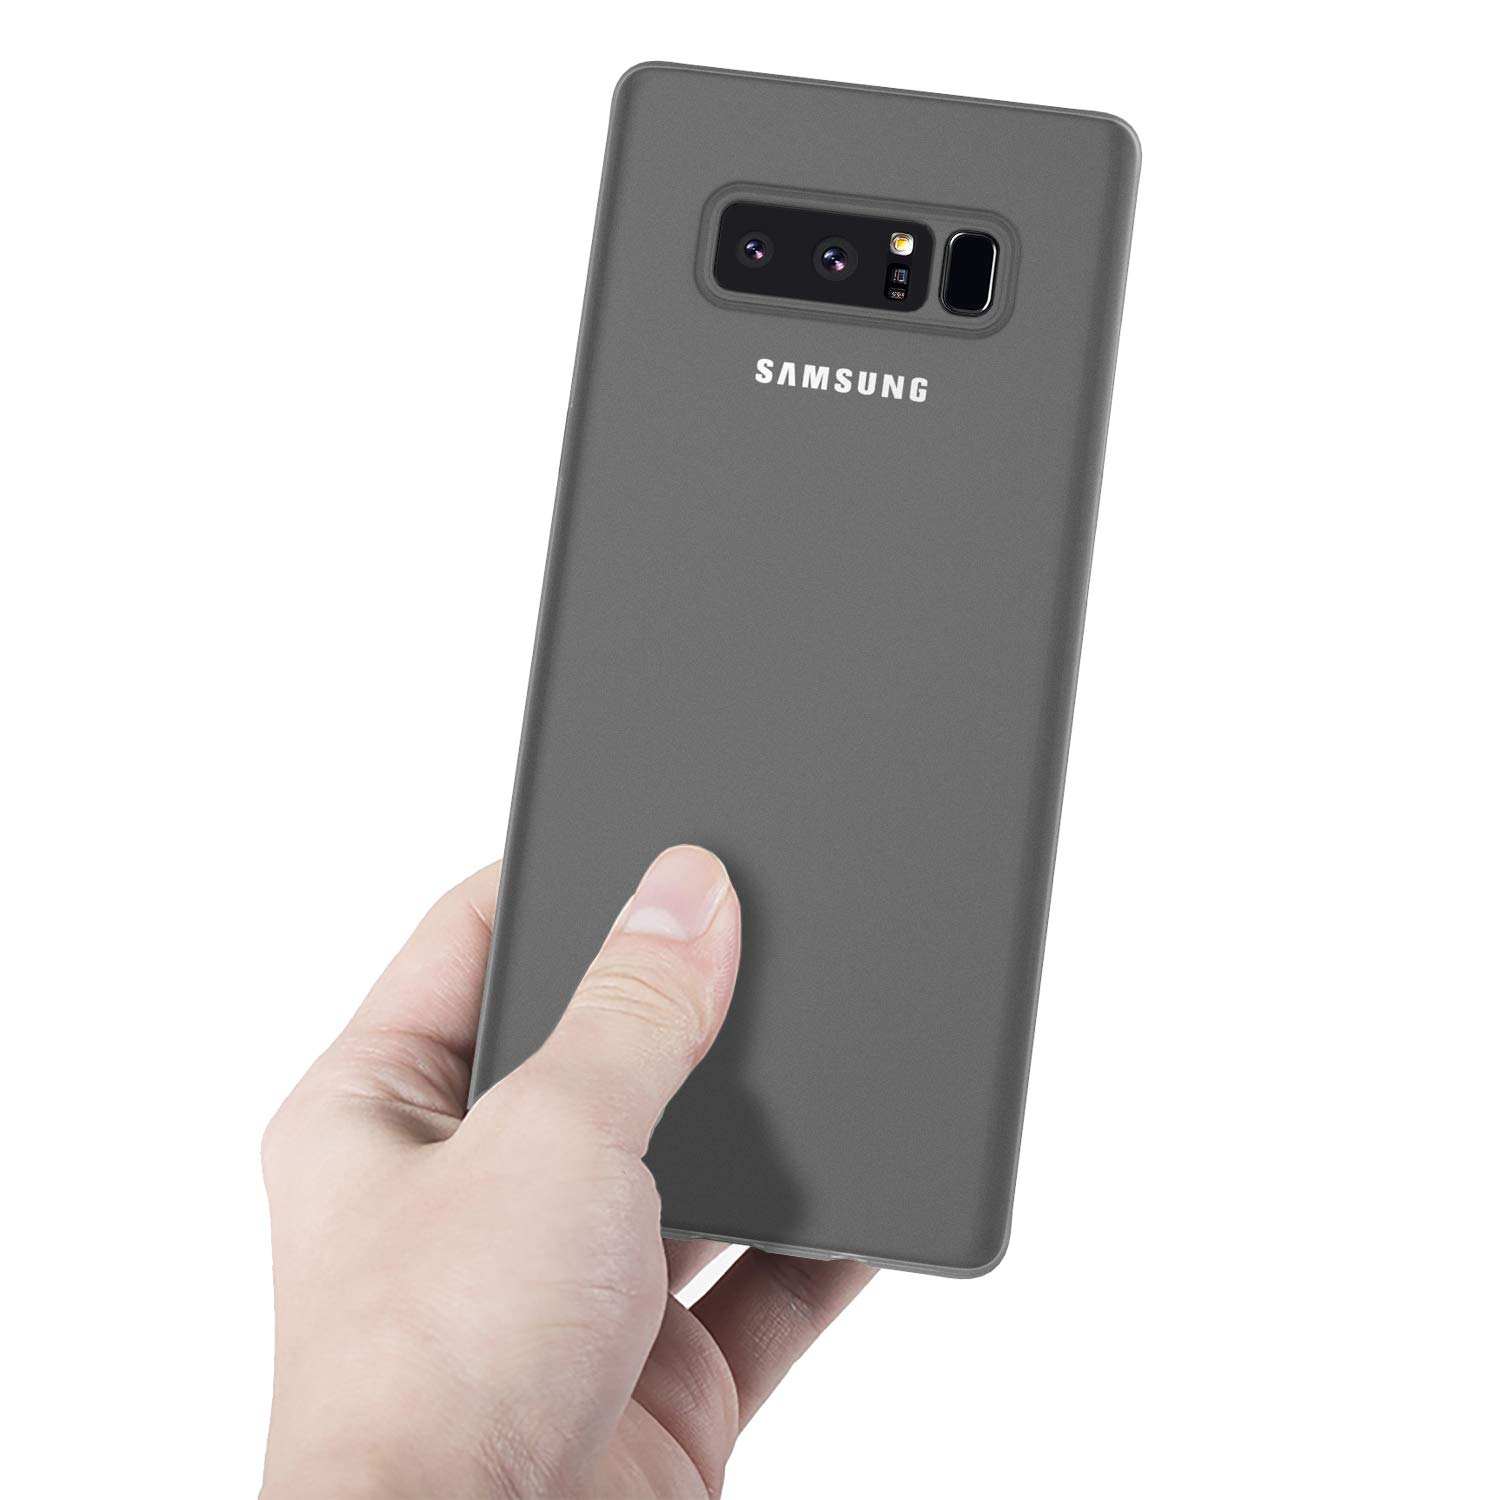 Samsung Galaxy Note 8 Case Taiersi Full Body Ultra Spigen Thin Fit 5 Hardcase Tipis Original Light Anti Scratch Non Slip Protection Cover Slim Hard Pc Protecor For